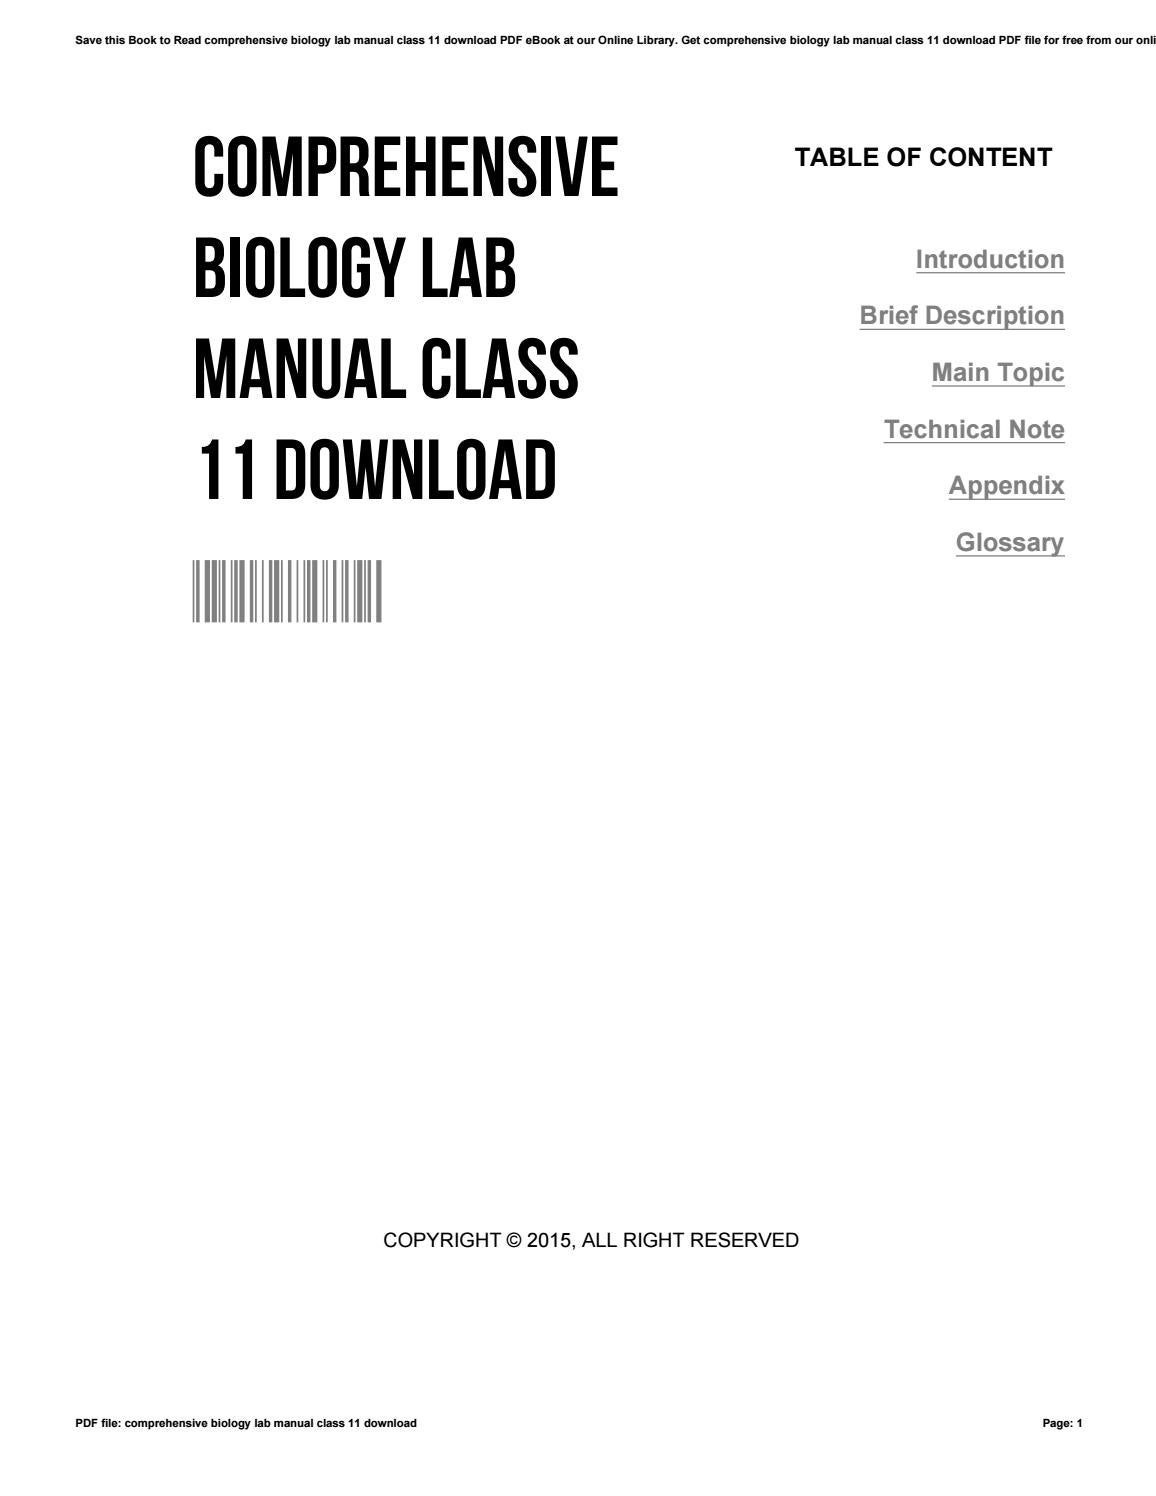 Comprehensive biology lab manual class 11 download by